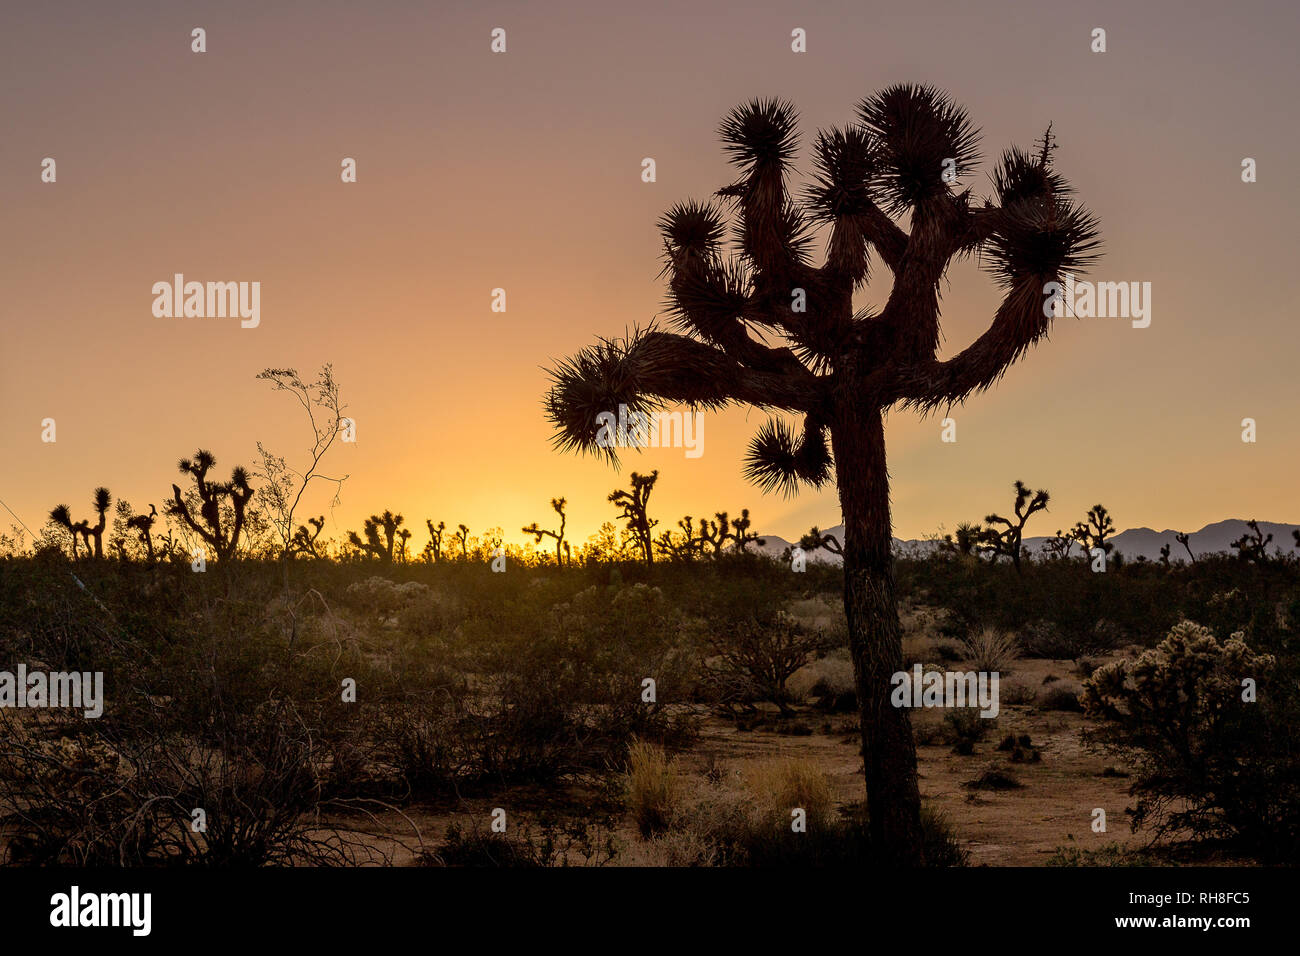 beautiful desert scenery in Californias Joshua Tree National Park